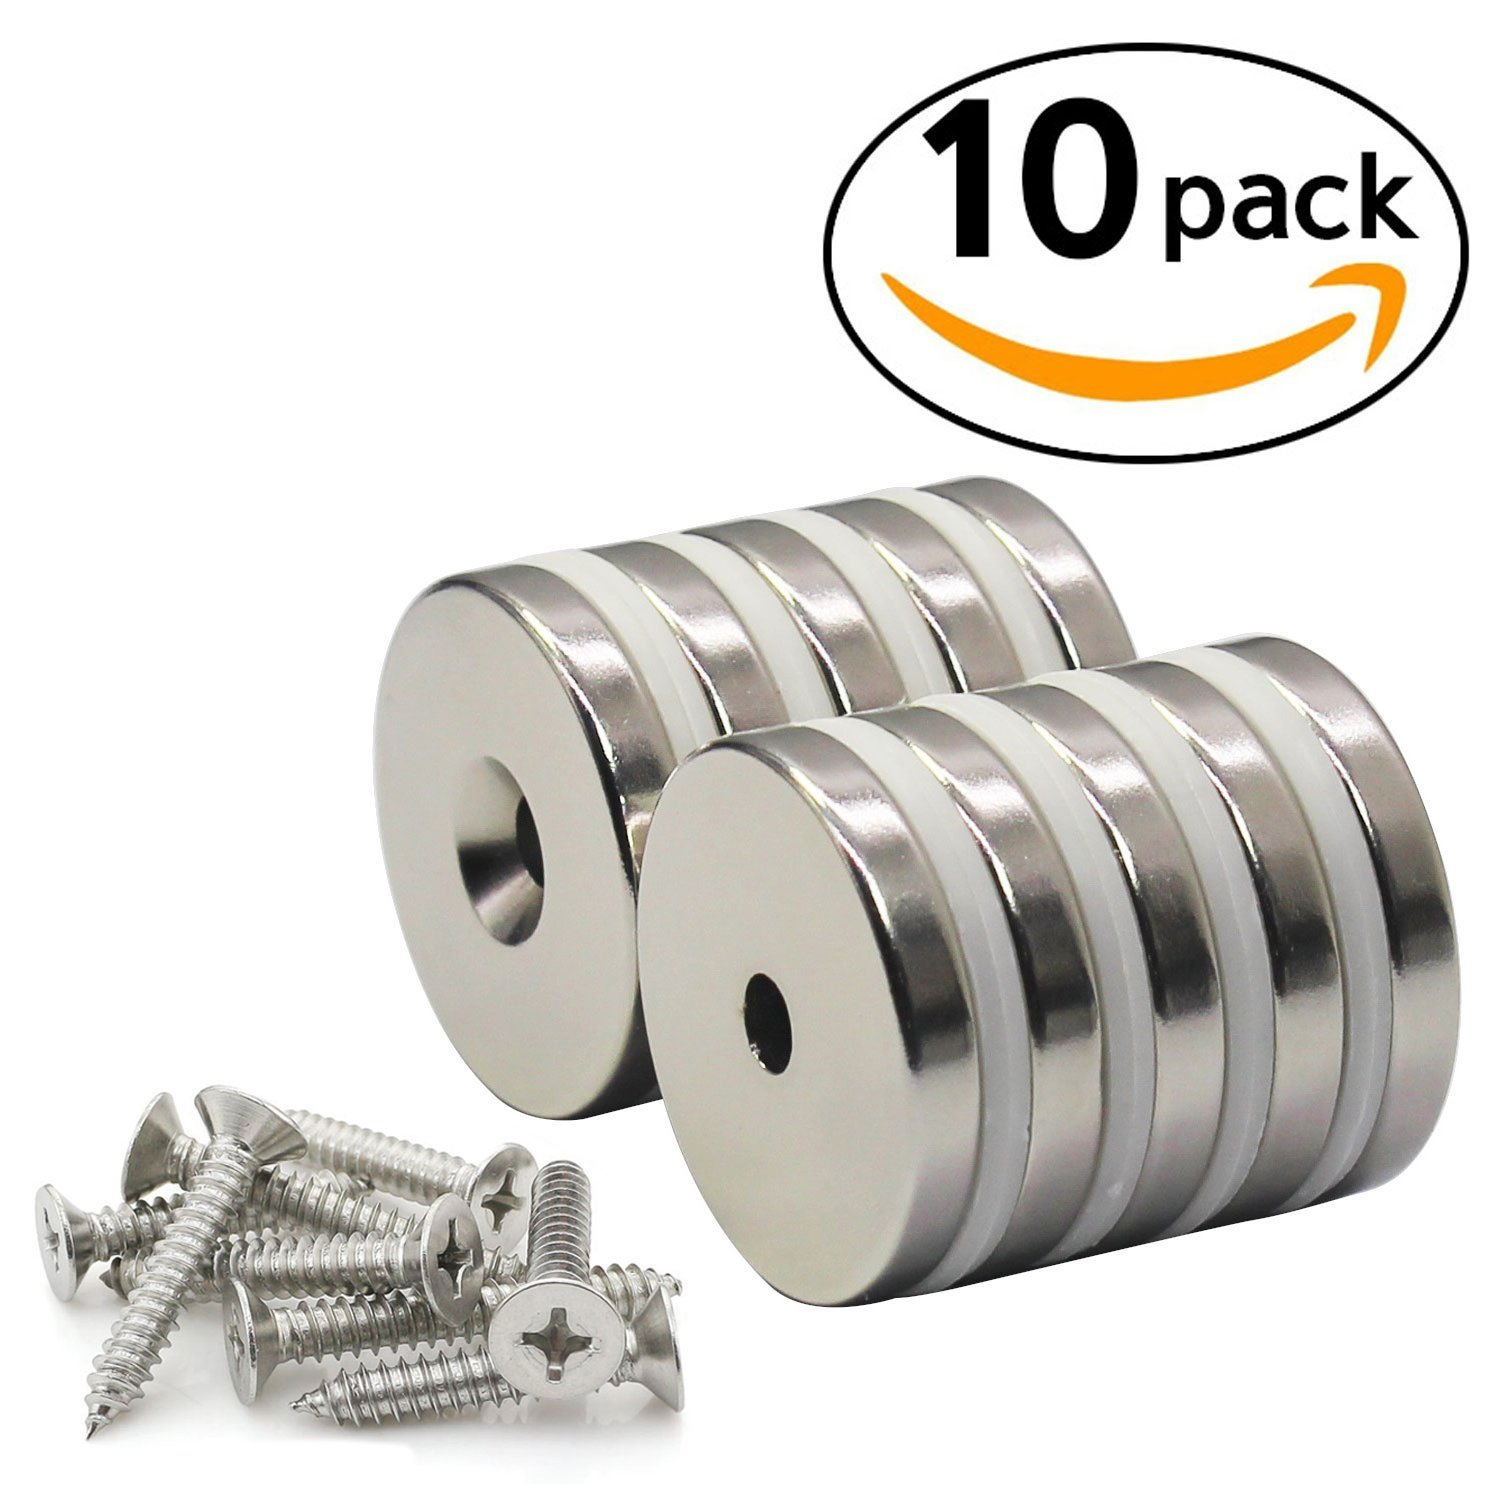 Strong Neodymium Disc Countersunk Hole Magnets With Screws 10 Pack for Kitchen, Office, Garage, Home, Workplace 1.26''D x 0.2''H